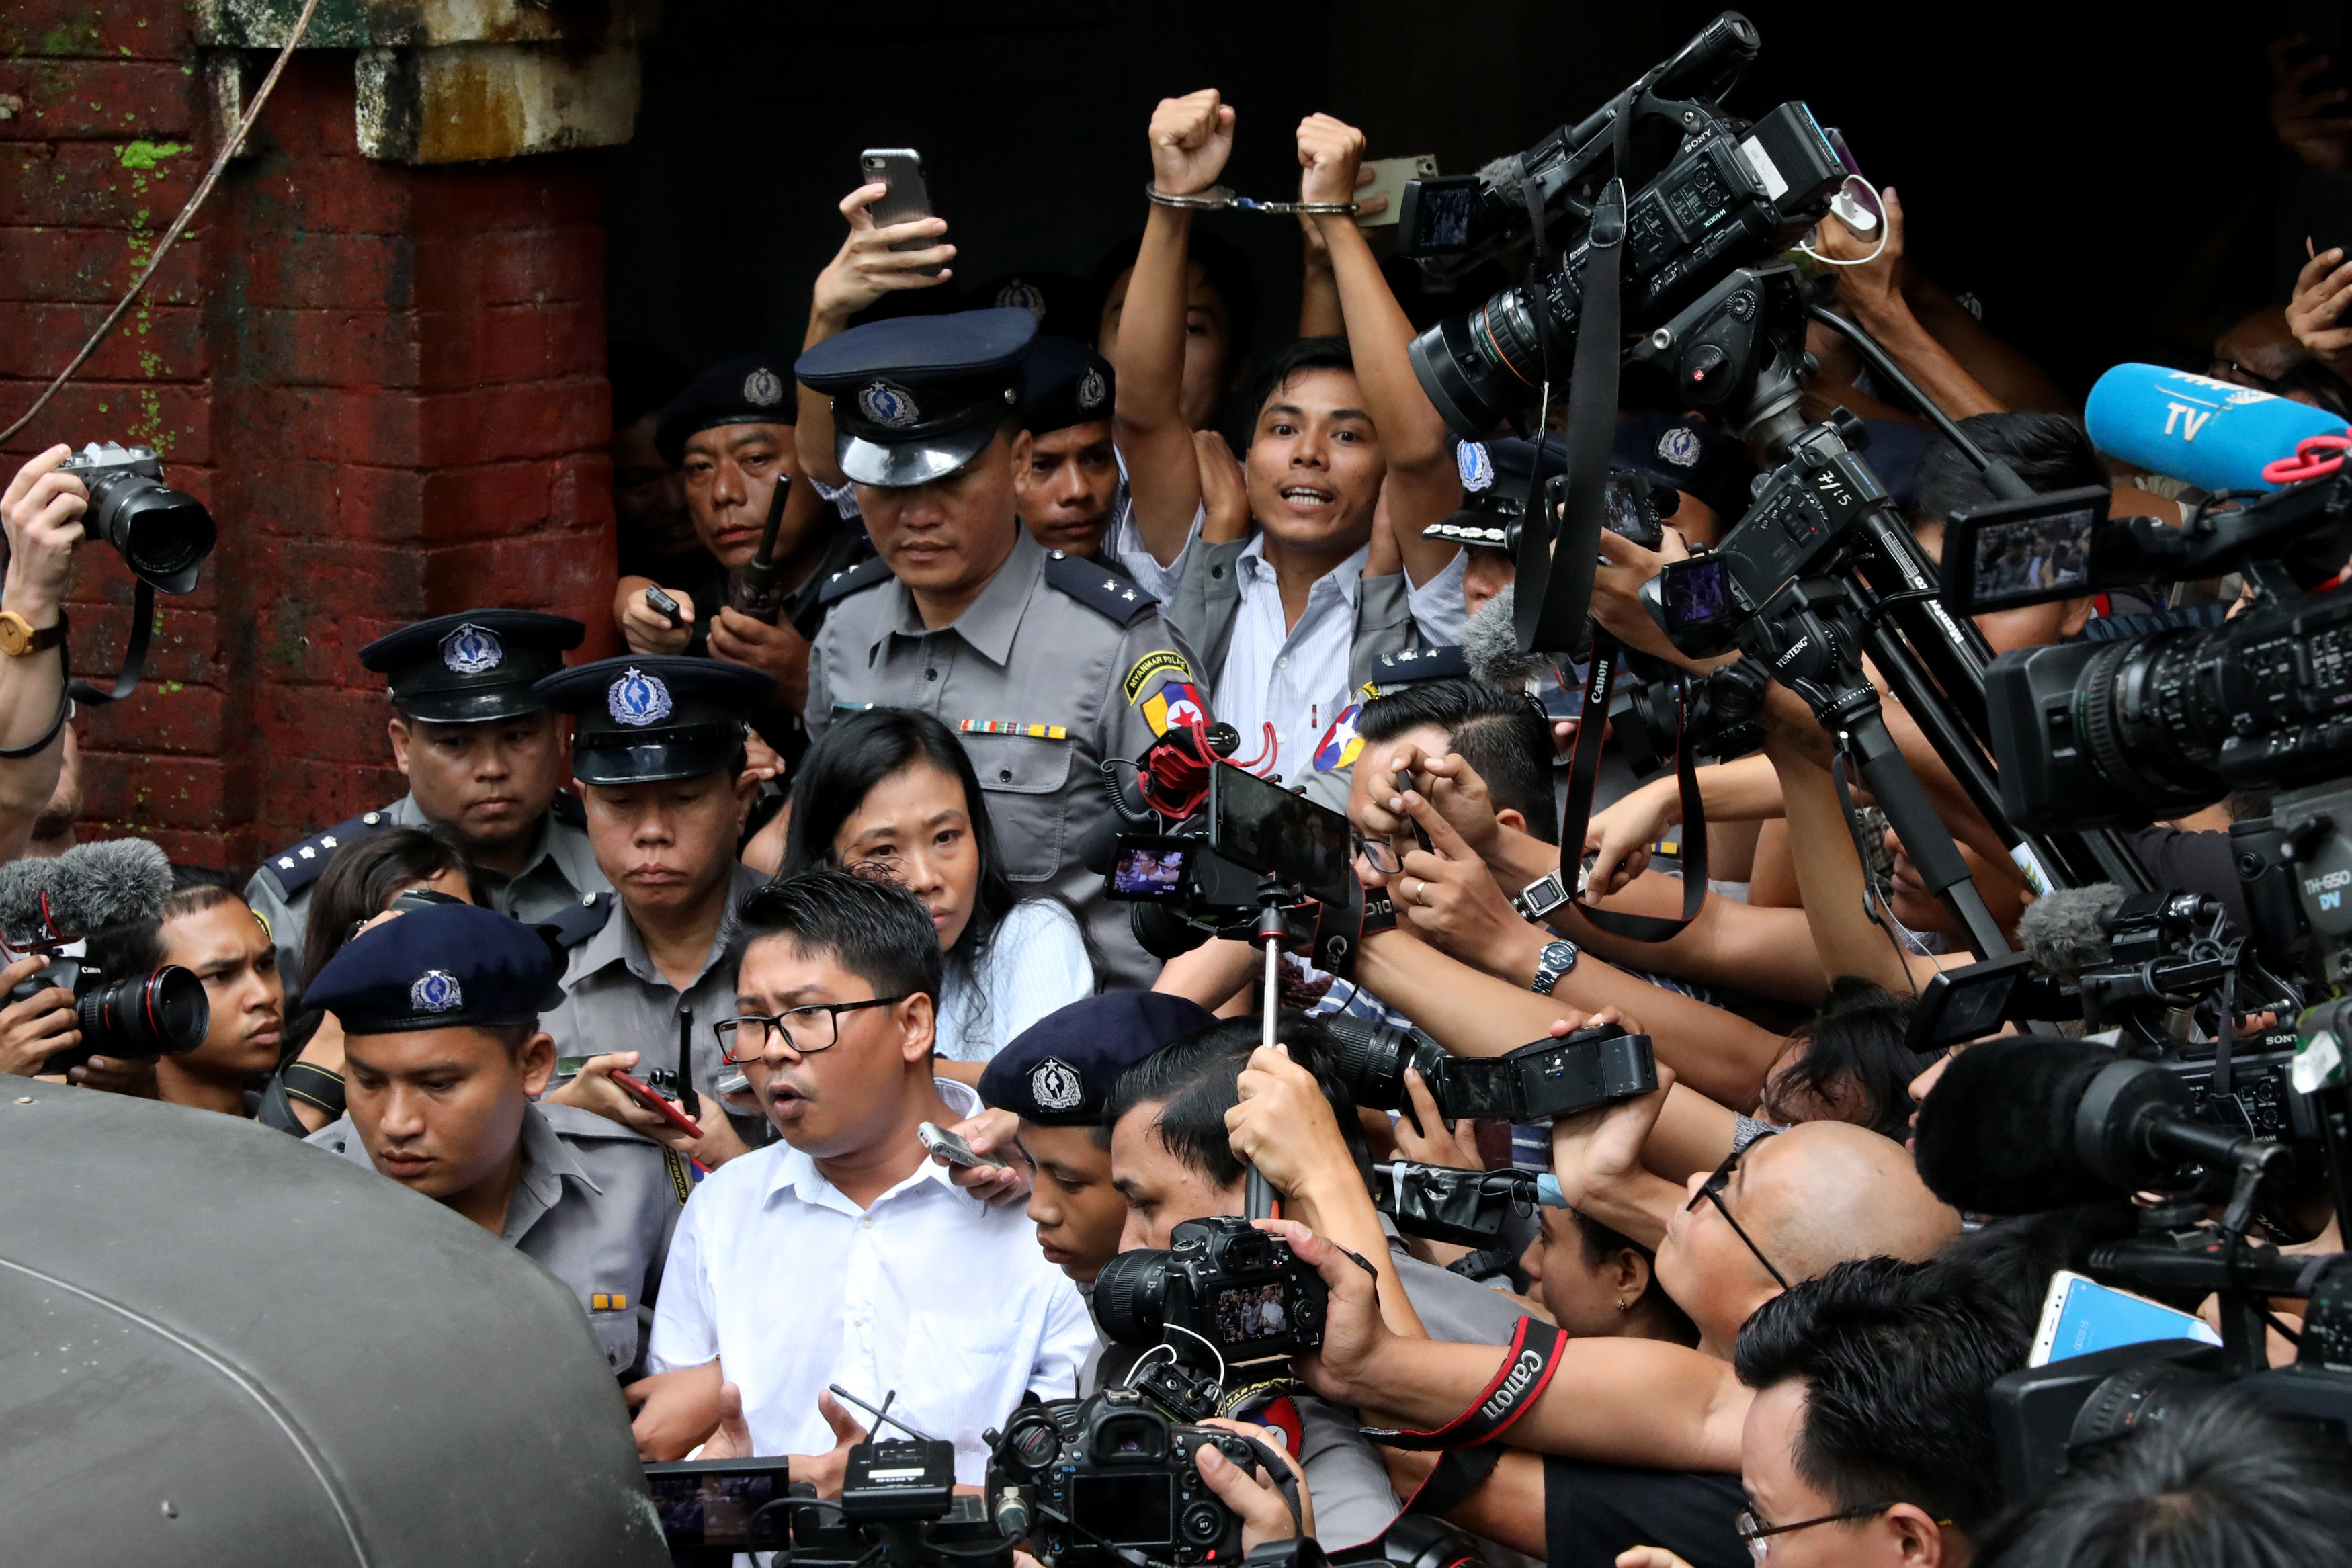 Detained Reuters journalists Wa Lone and Kyaw Soe Oo leave Insein court after listening to the verdict in Yangon, Myanmar September 3, 2018. REUTERS/Stringer